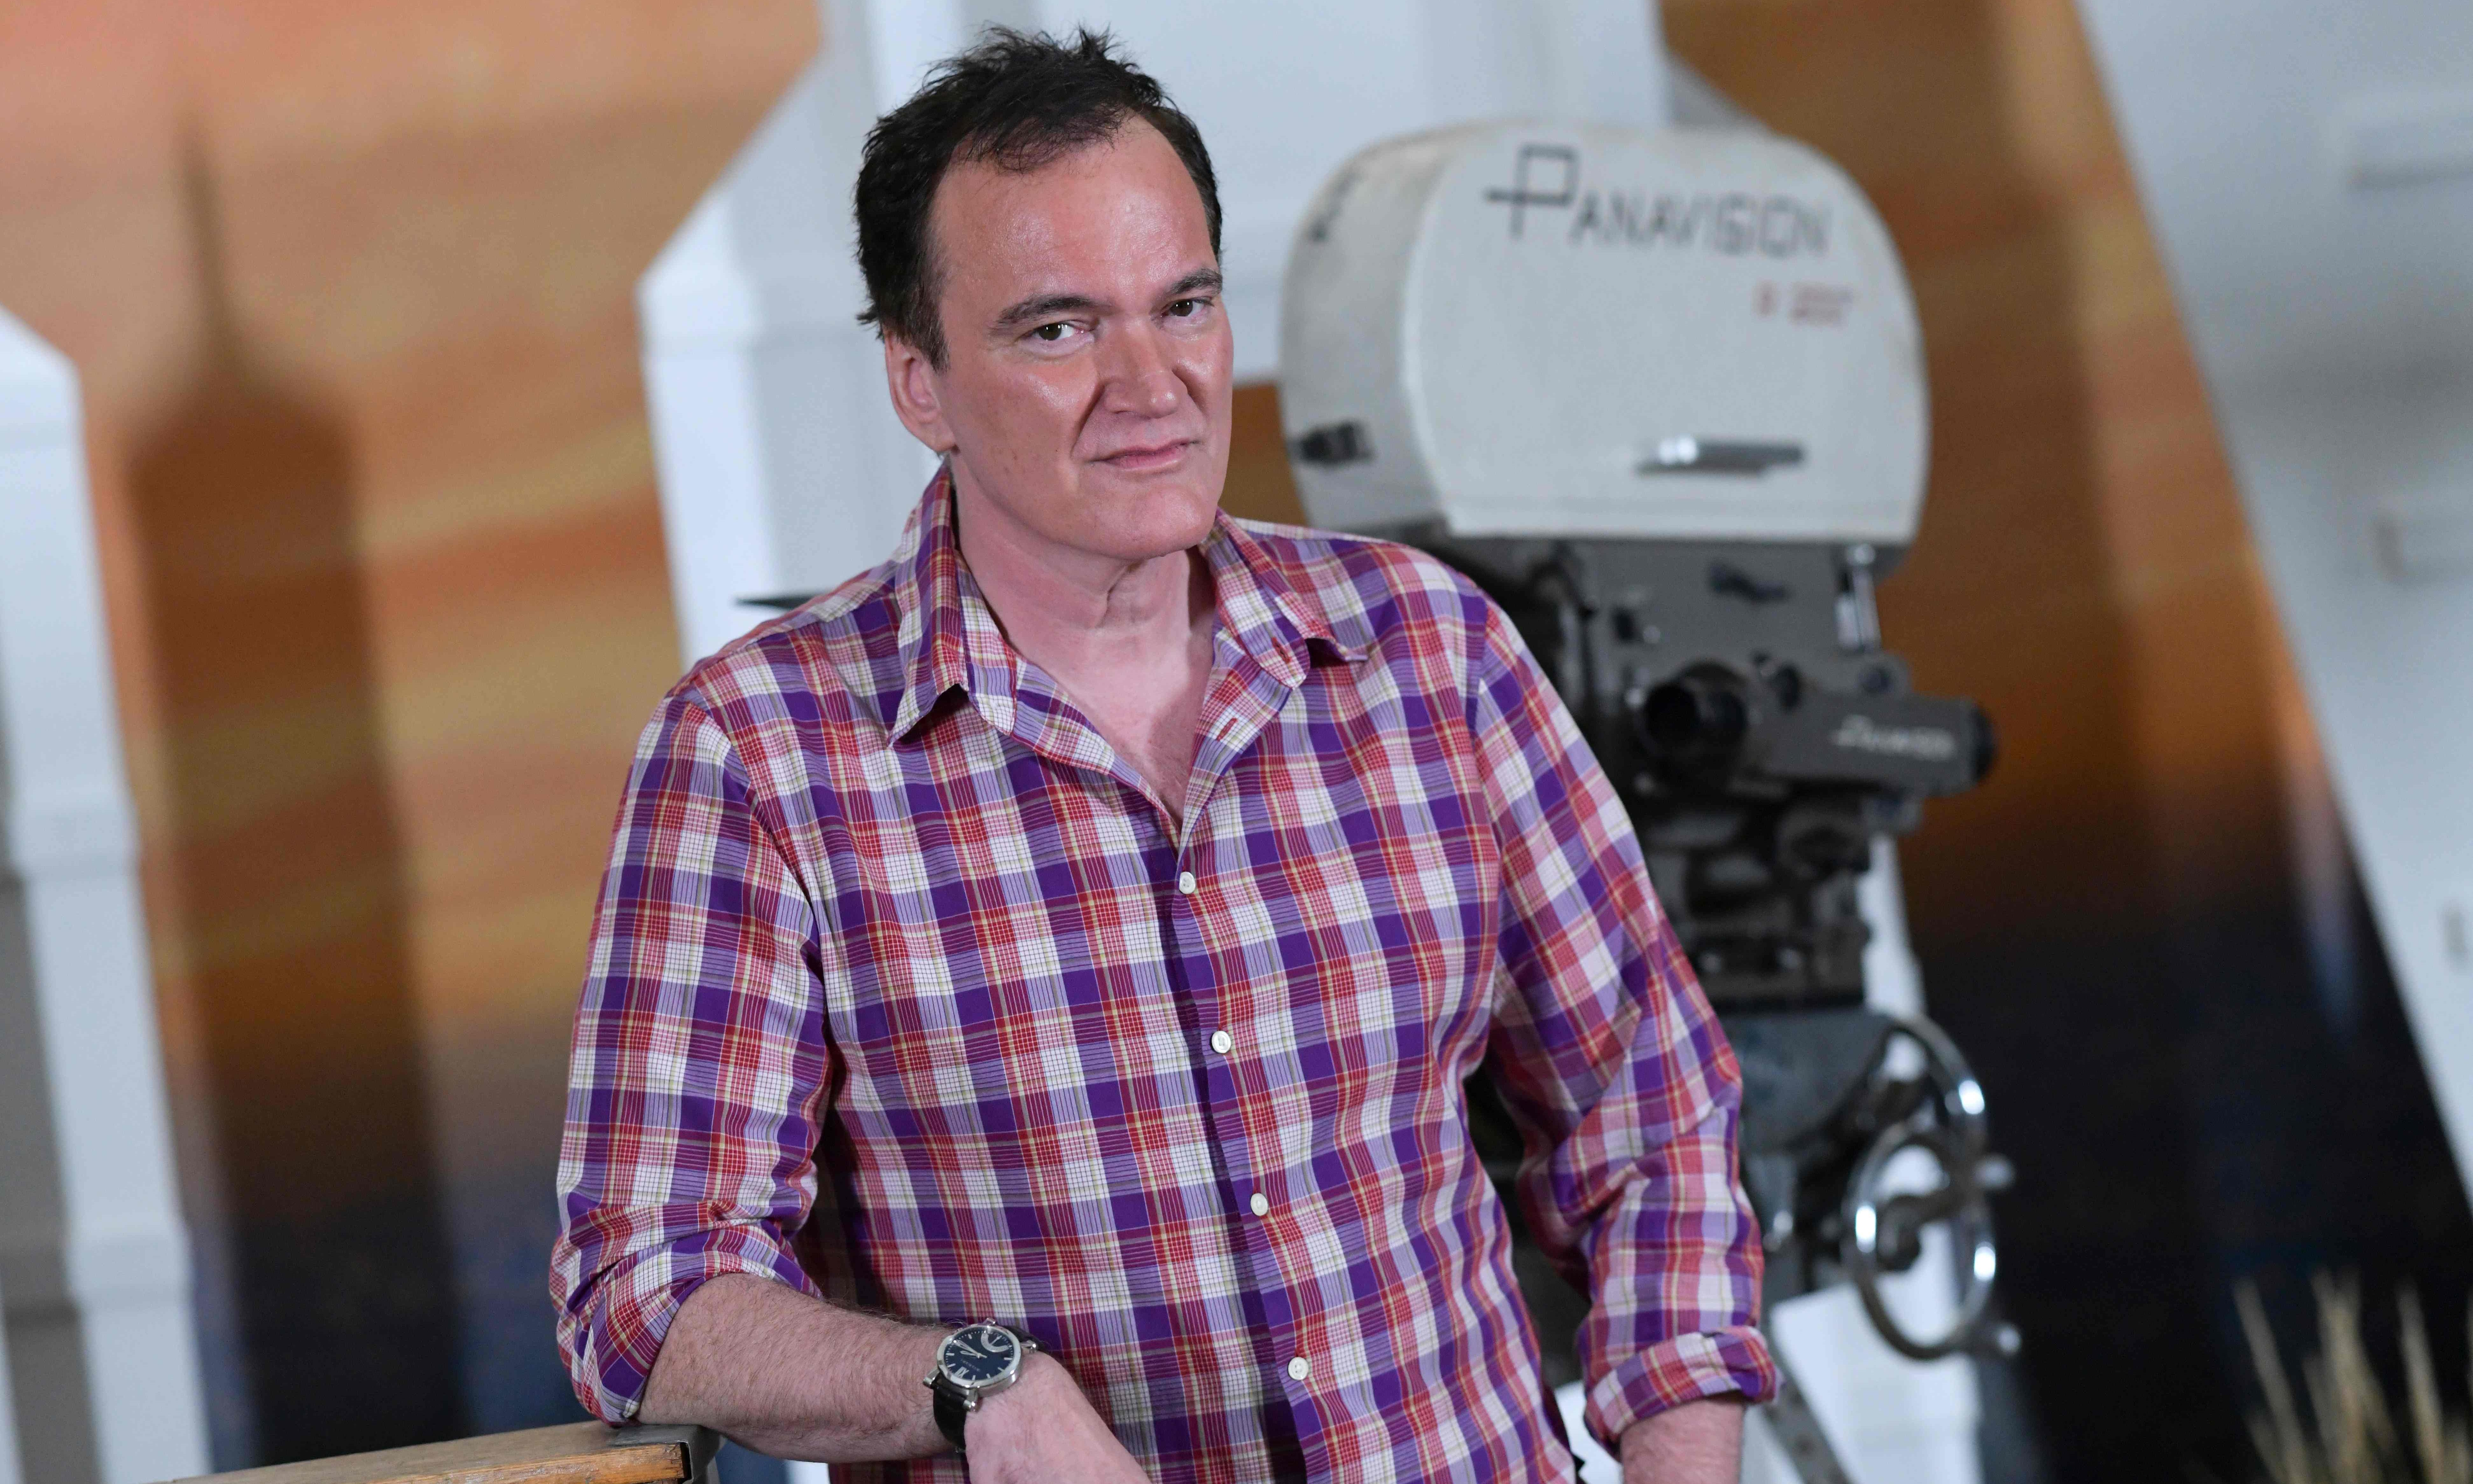 Quentin unchained: what will Tarantino's 10th and final film be?